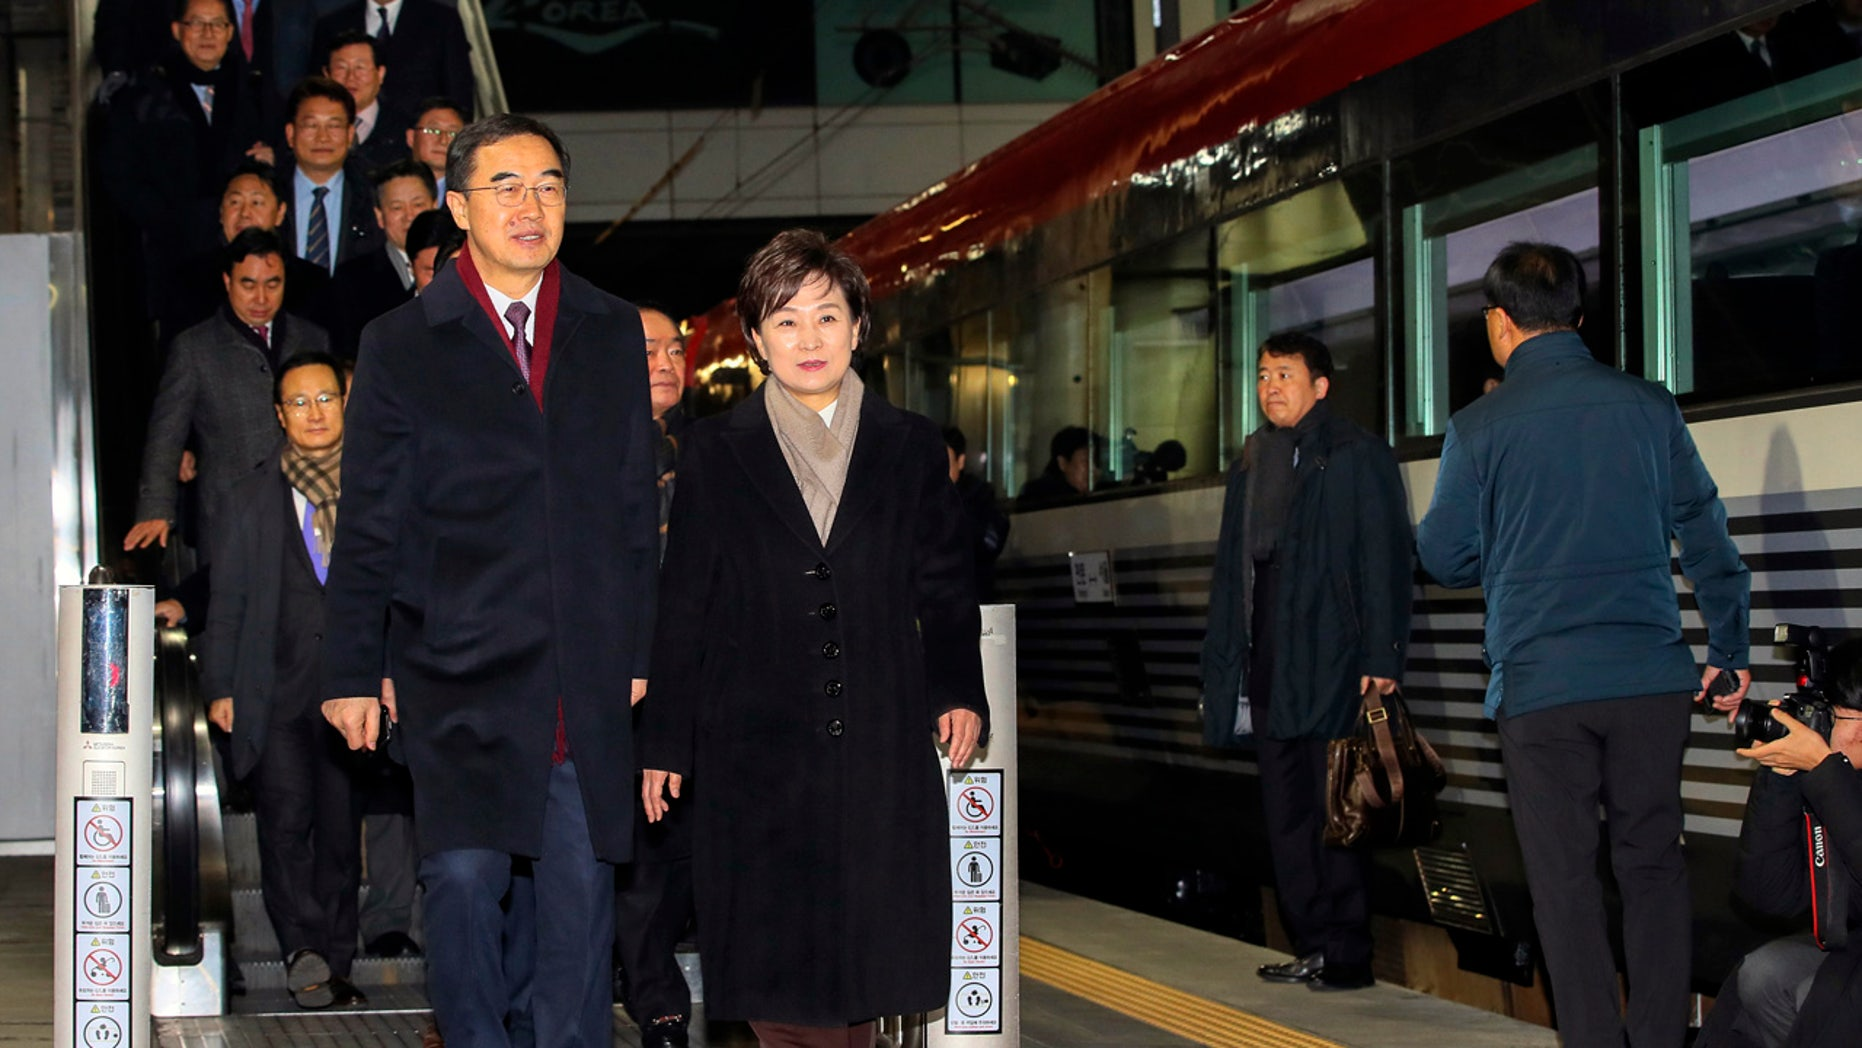 South Korean Association Minister Cho Myoung-gyon, bottom left, and officials arrive on Wednesday, December 26, 2018 for a train to North Korea at Seoul Station in South Korea, South Korea. (Jin Sungchul / Yonhap via AP)